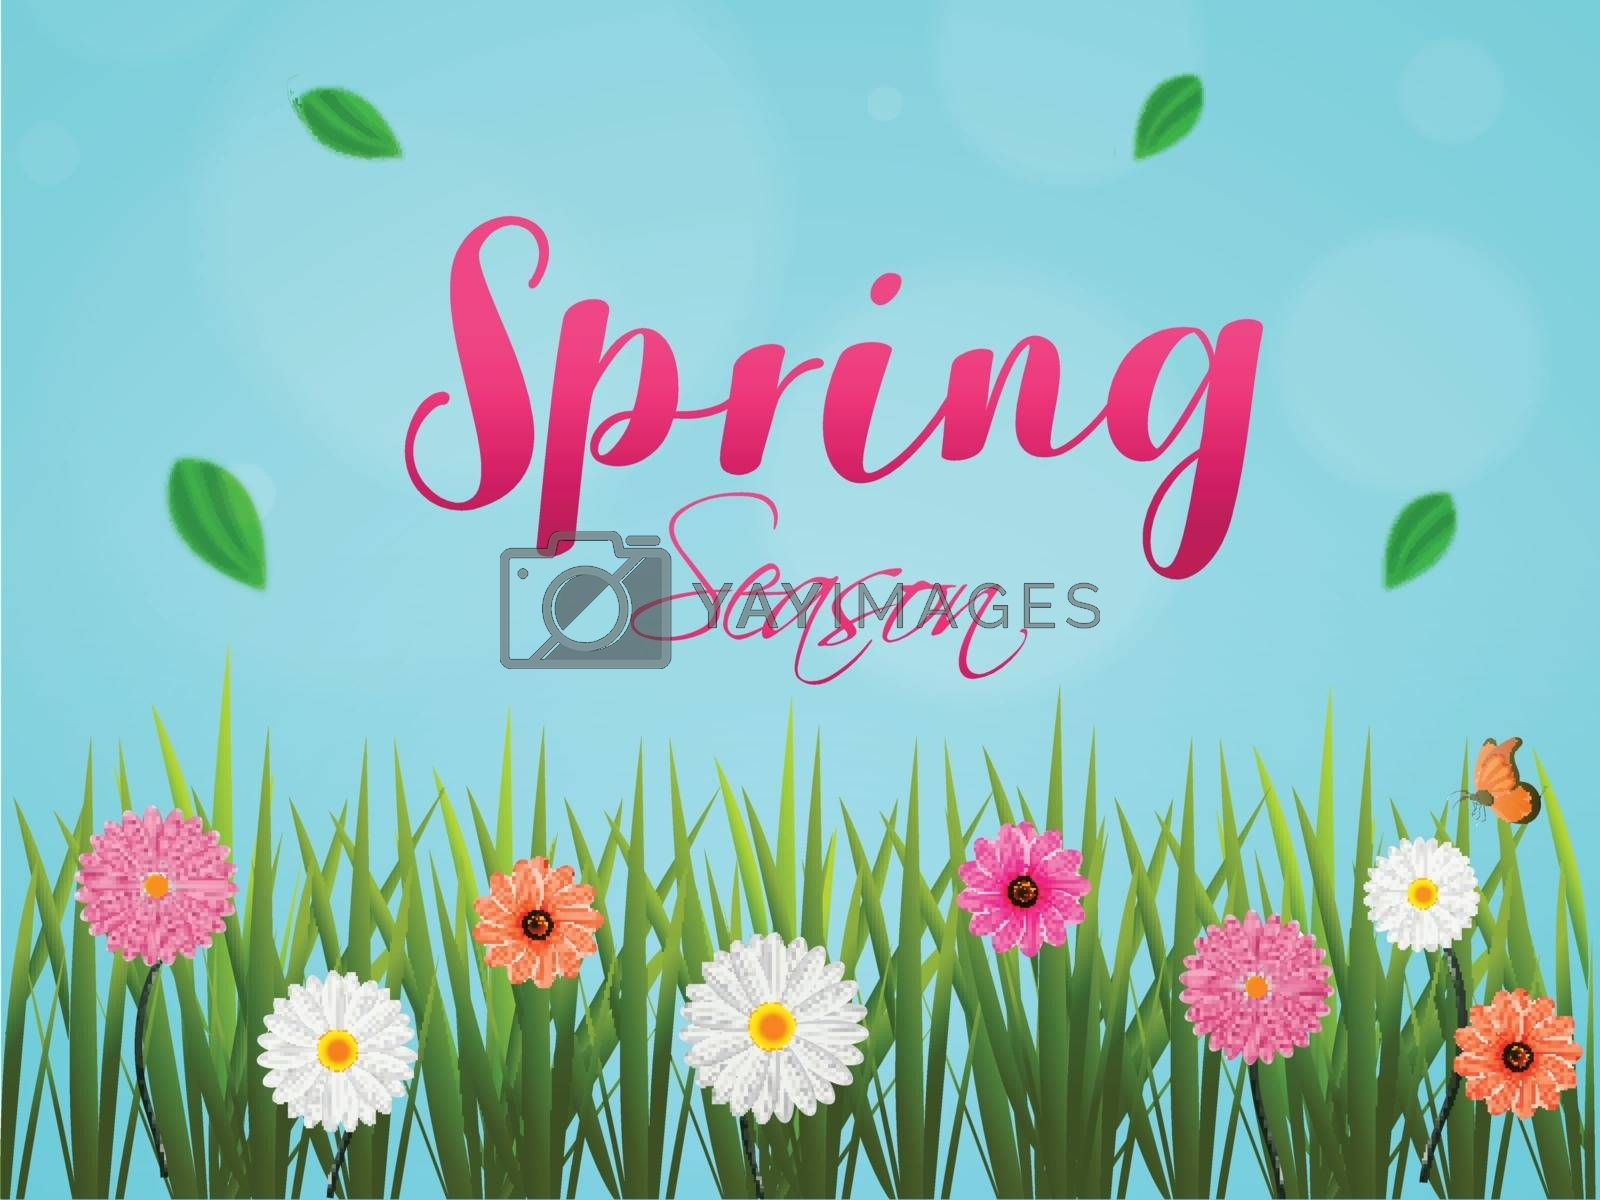 Spring Season celebration greeting card or poster design decorated with colorful daisy flowers on shiny blue background.